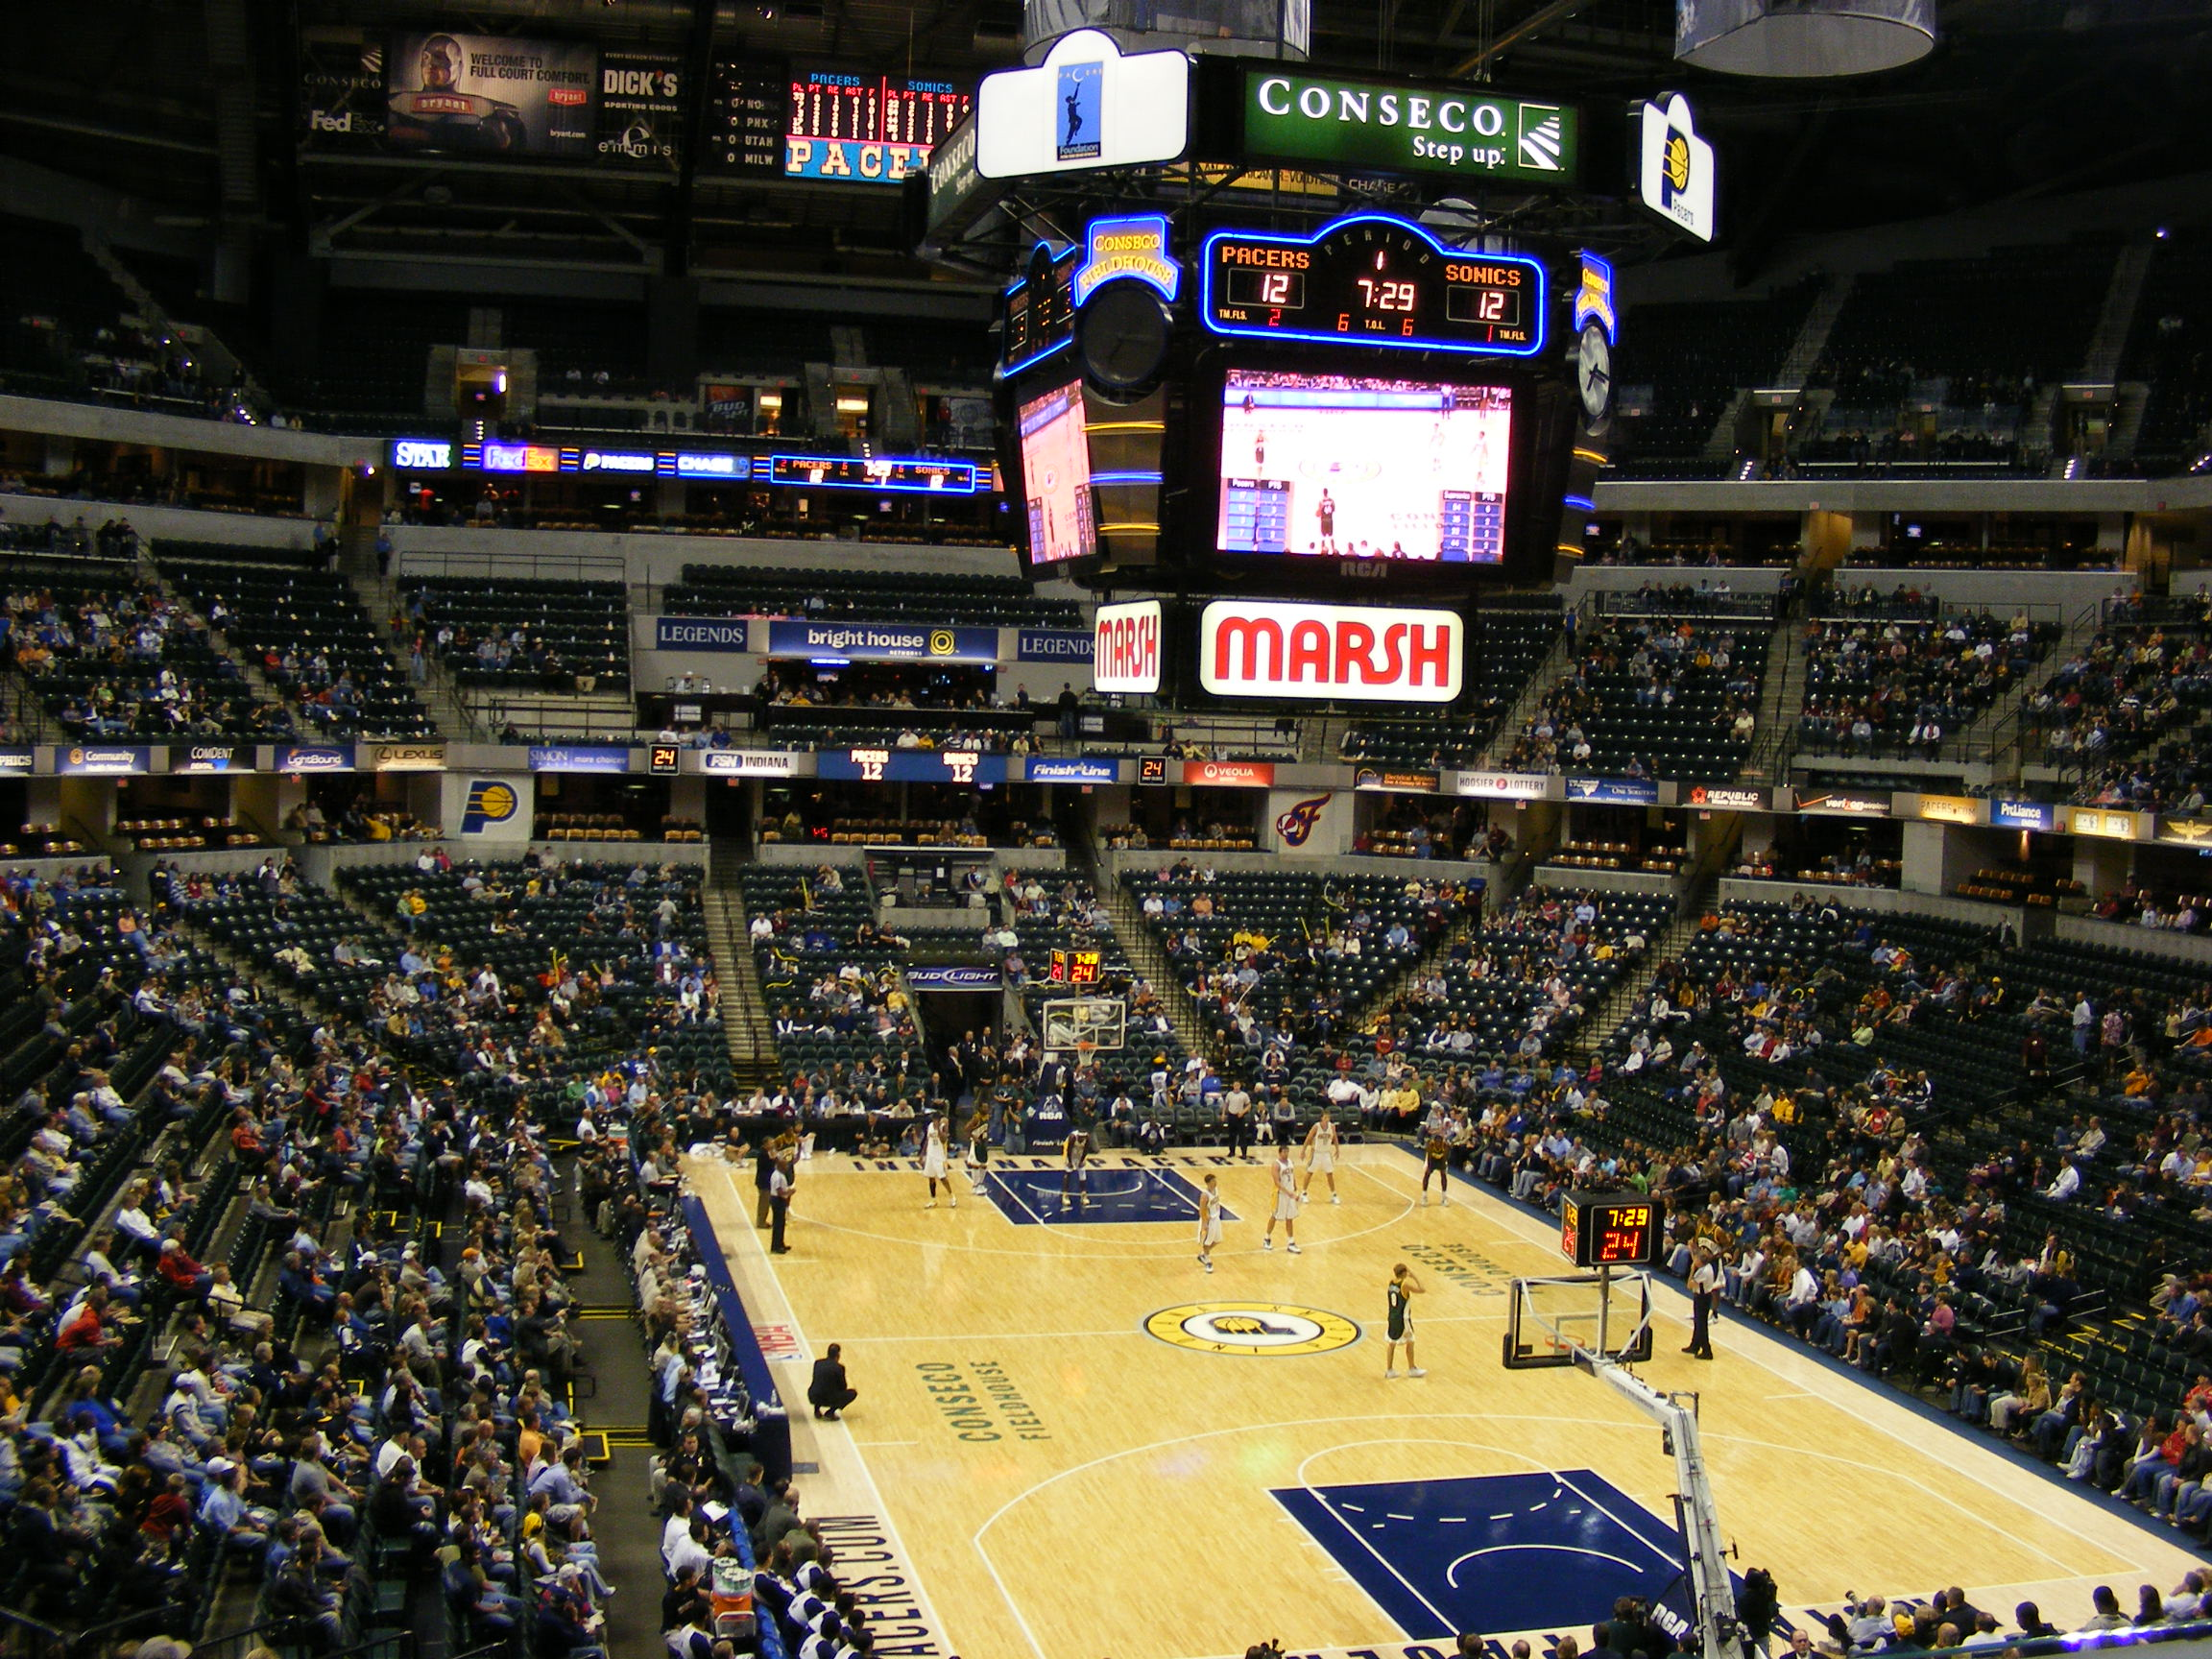 File:Conseco fieldhouse seating bowl.JPG - Wikipedia